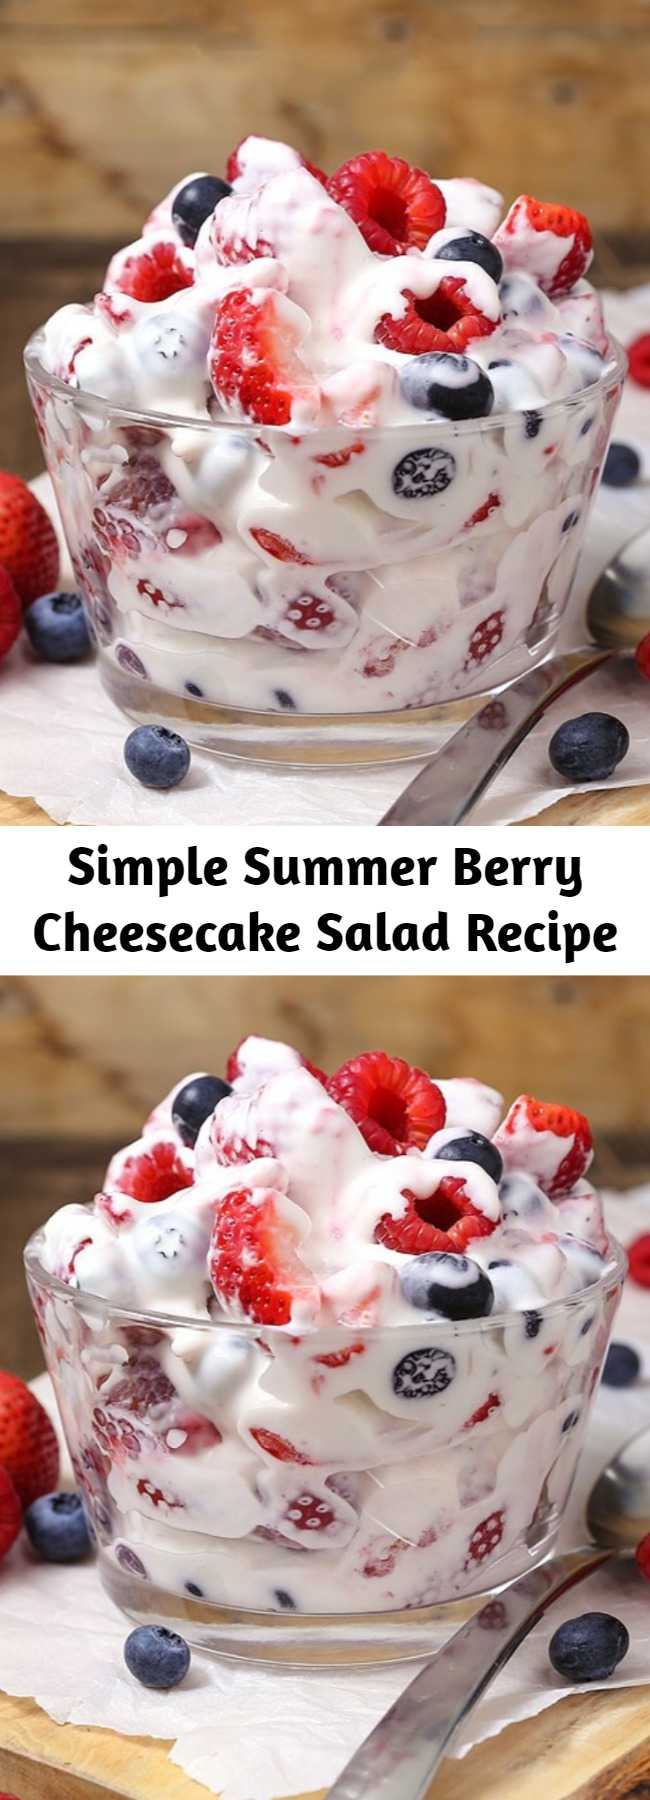 Simple Summer Berry Cheesecake Salad Recipe - This simple Summer Berry Cheesecake Salad recipe comes together with just 5 ingredients. Rich and creamy cheesecake filling is folded into your favorite berries to create the most amazing fruit salad ever! Your family will go nuts over it. #cheesecakesalad #summersidedish